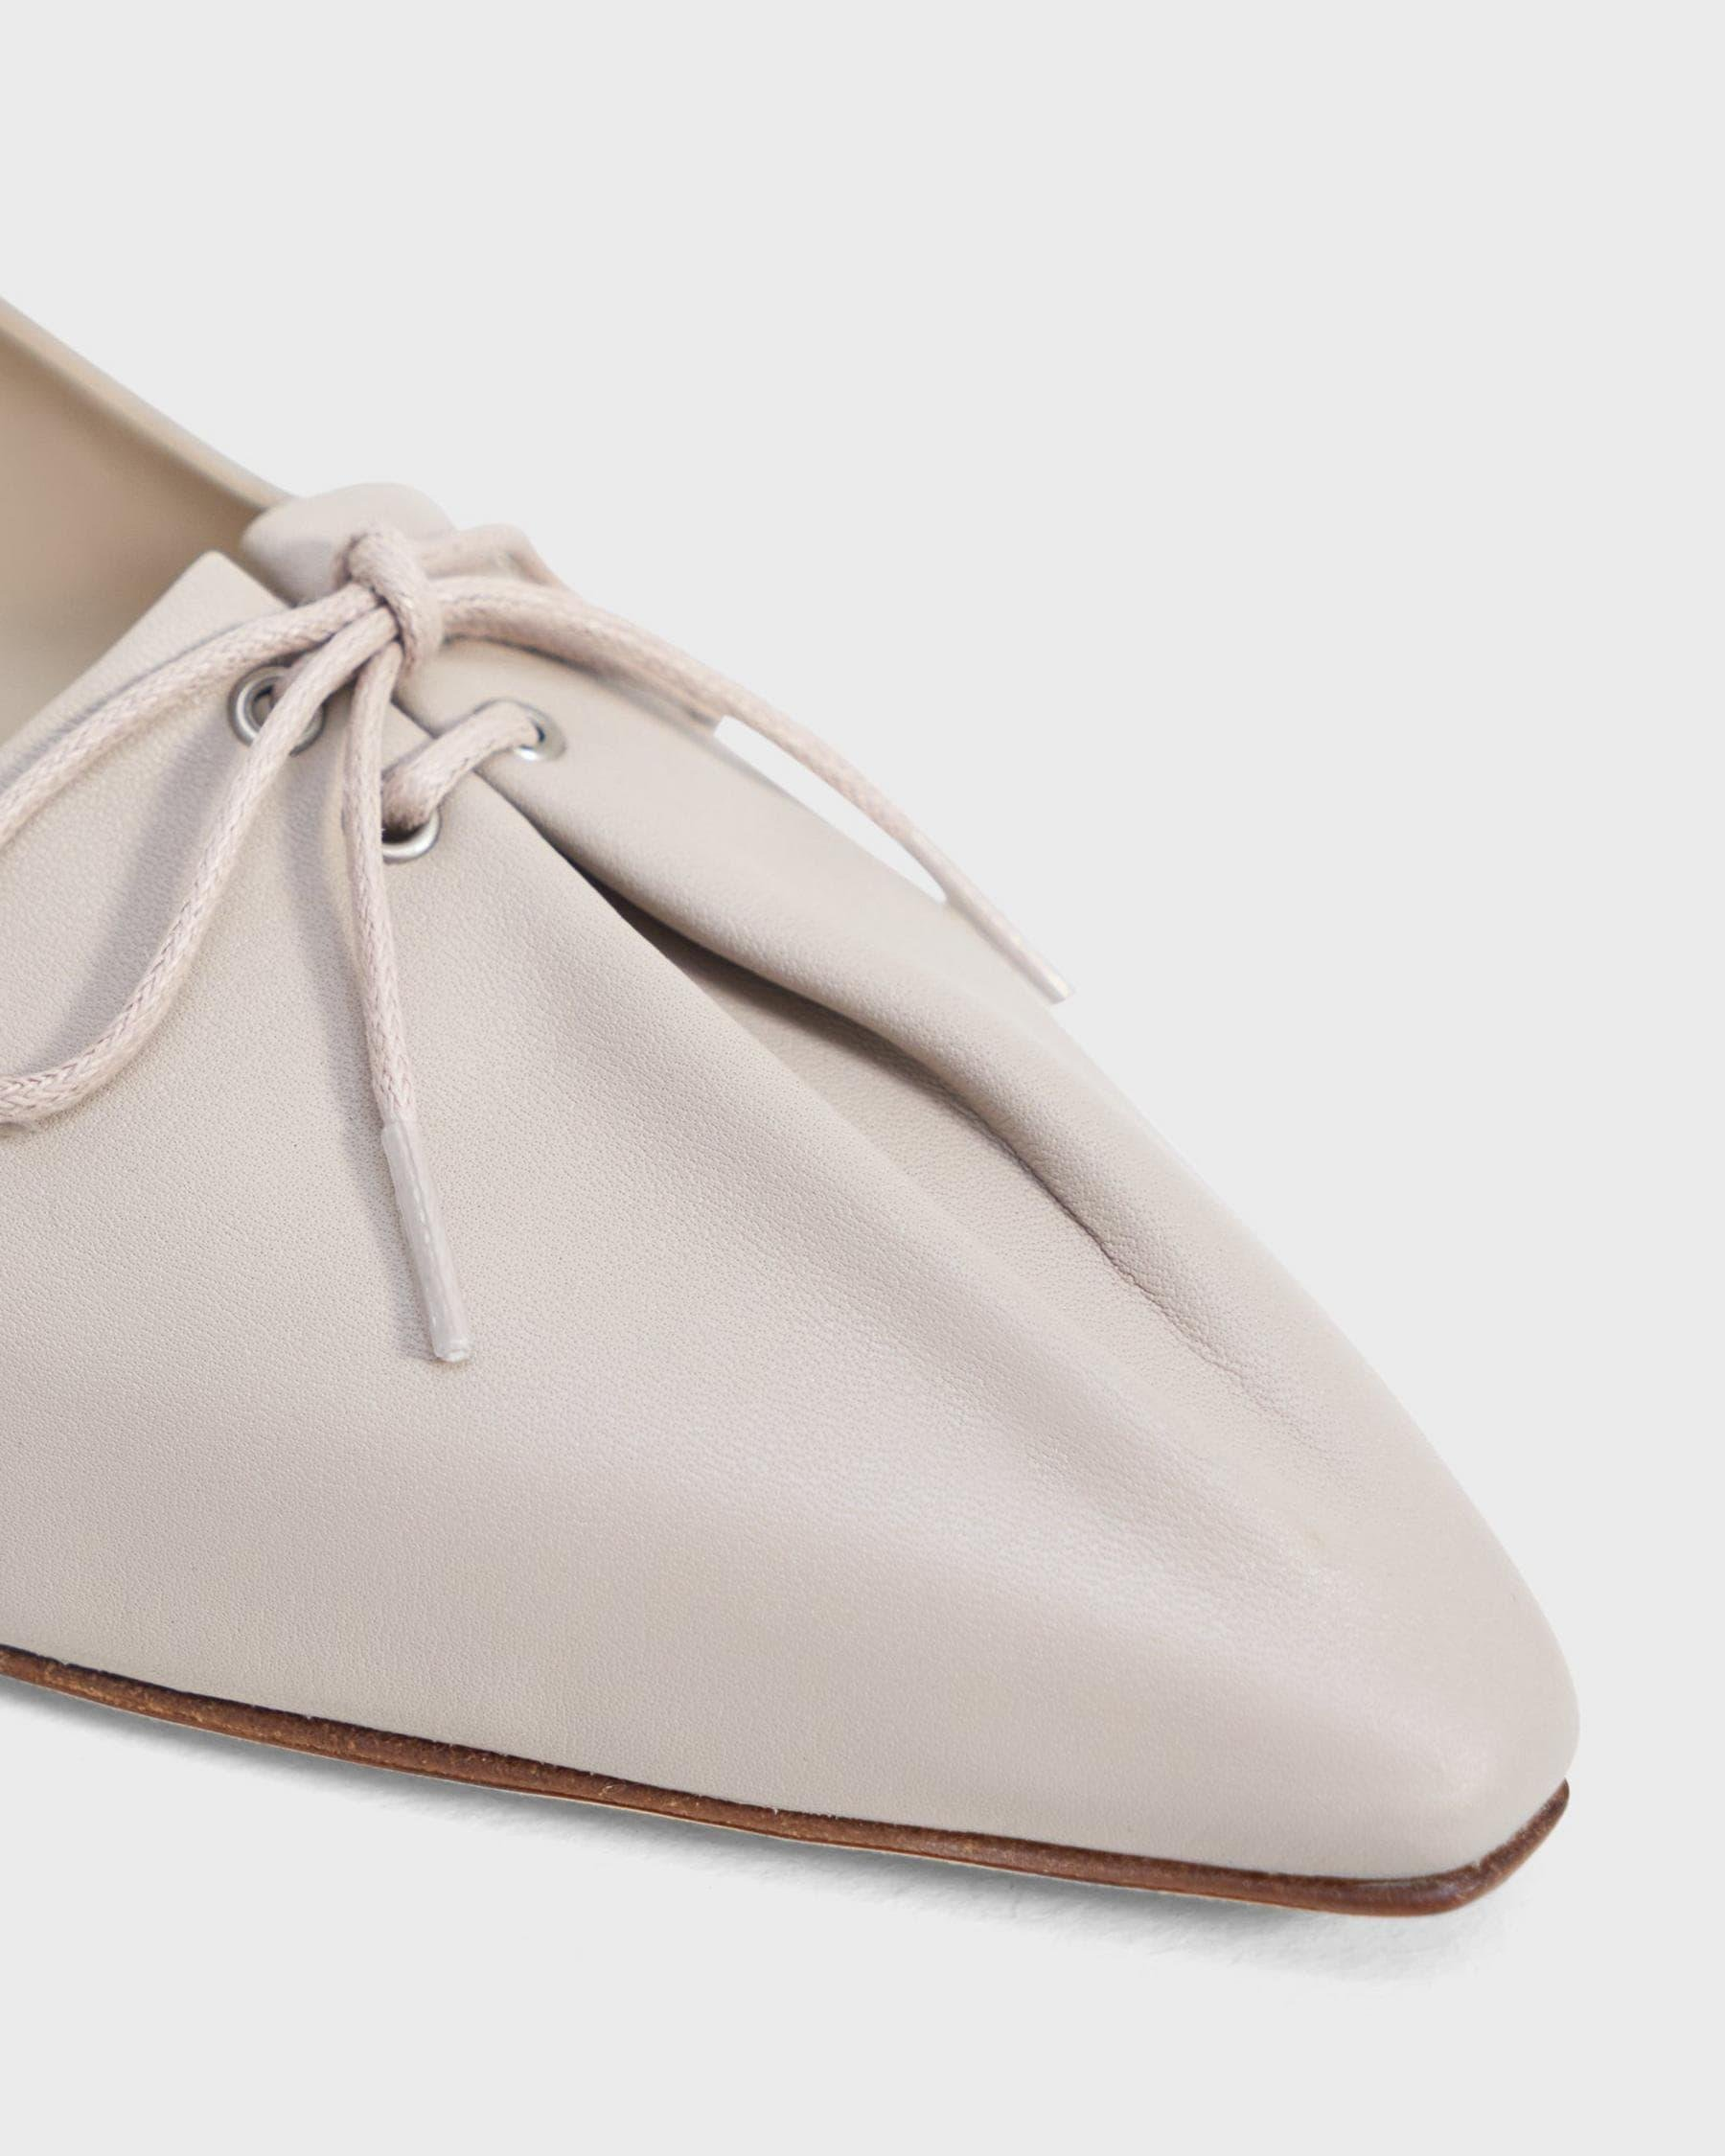 Pleated Ballet Flat in Leather 5